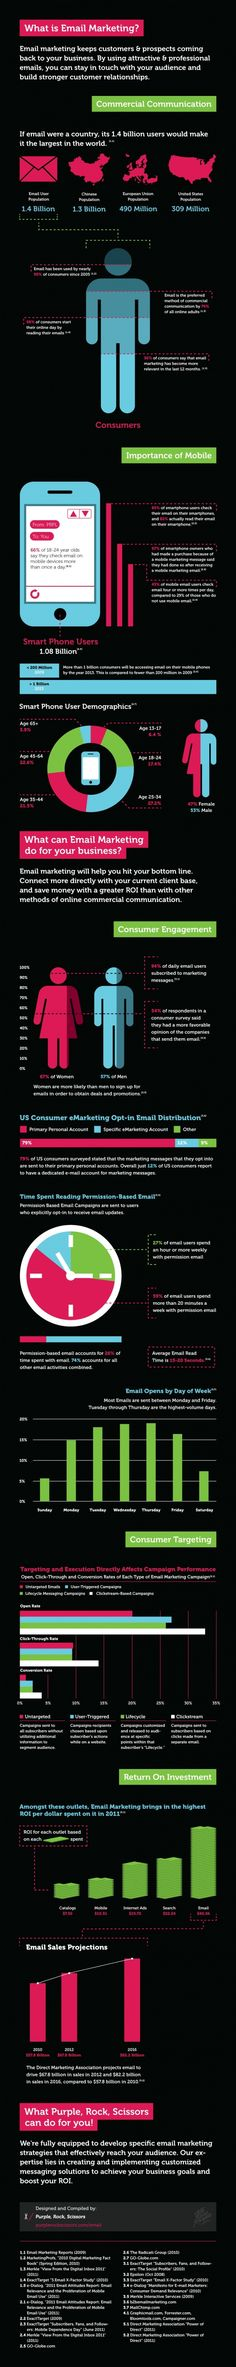 What Is Email Marketing? [INFOGRAPHIC]